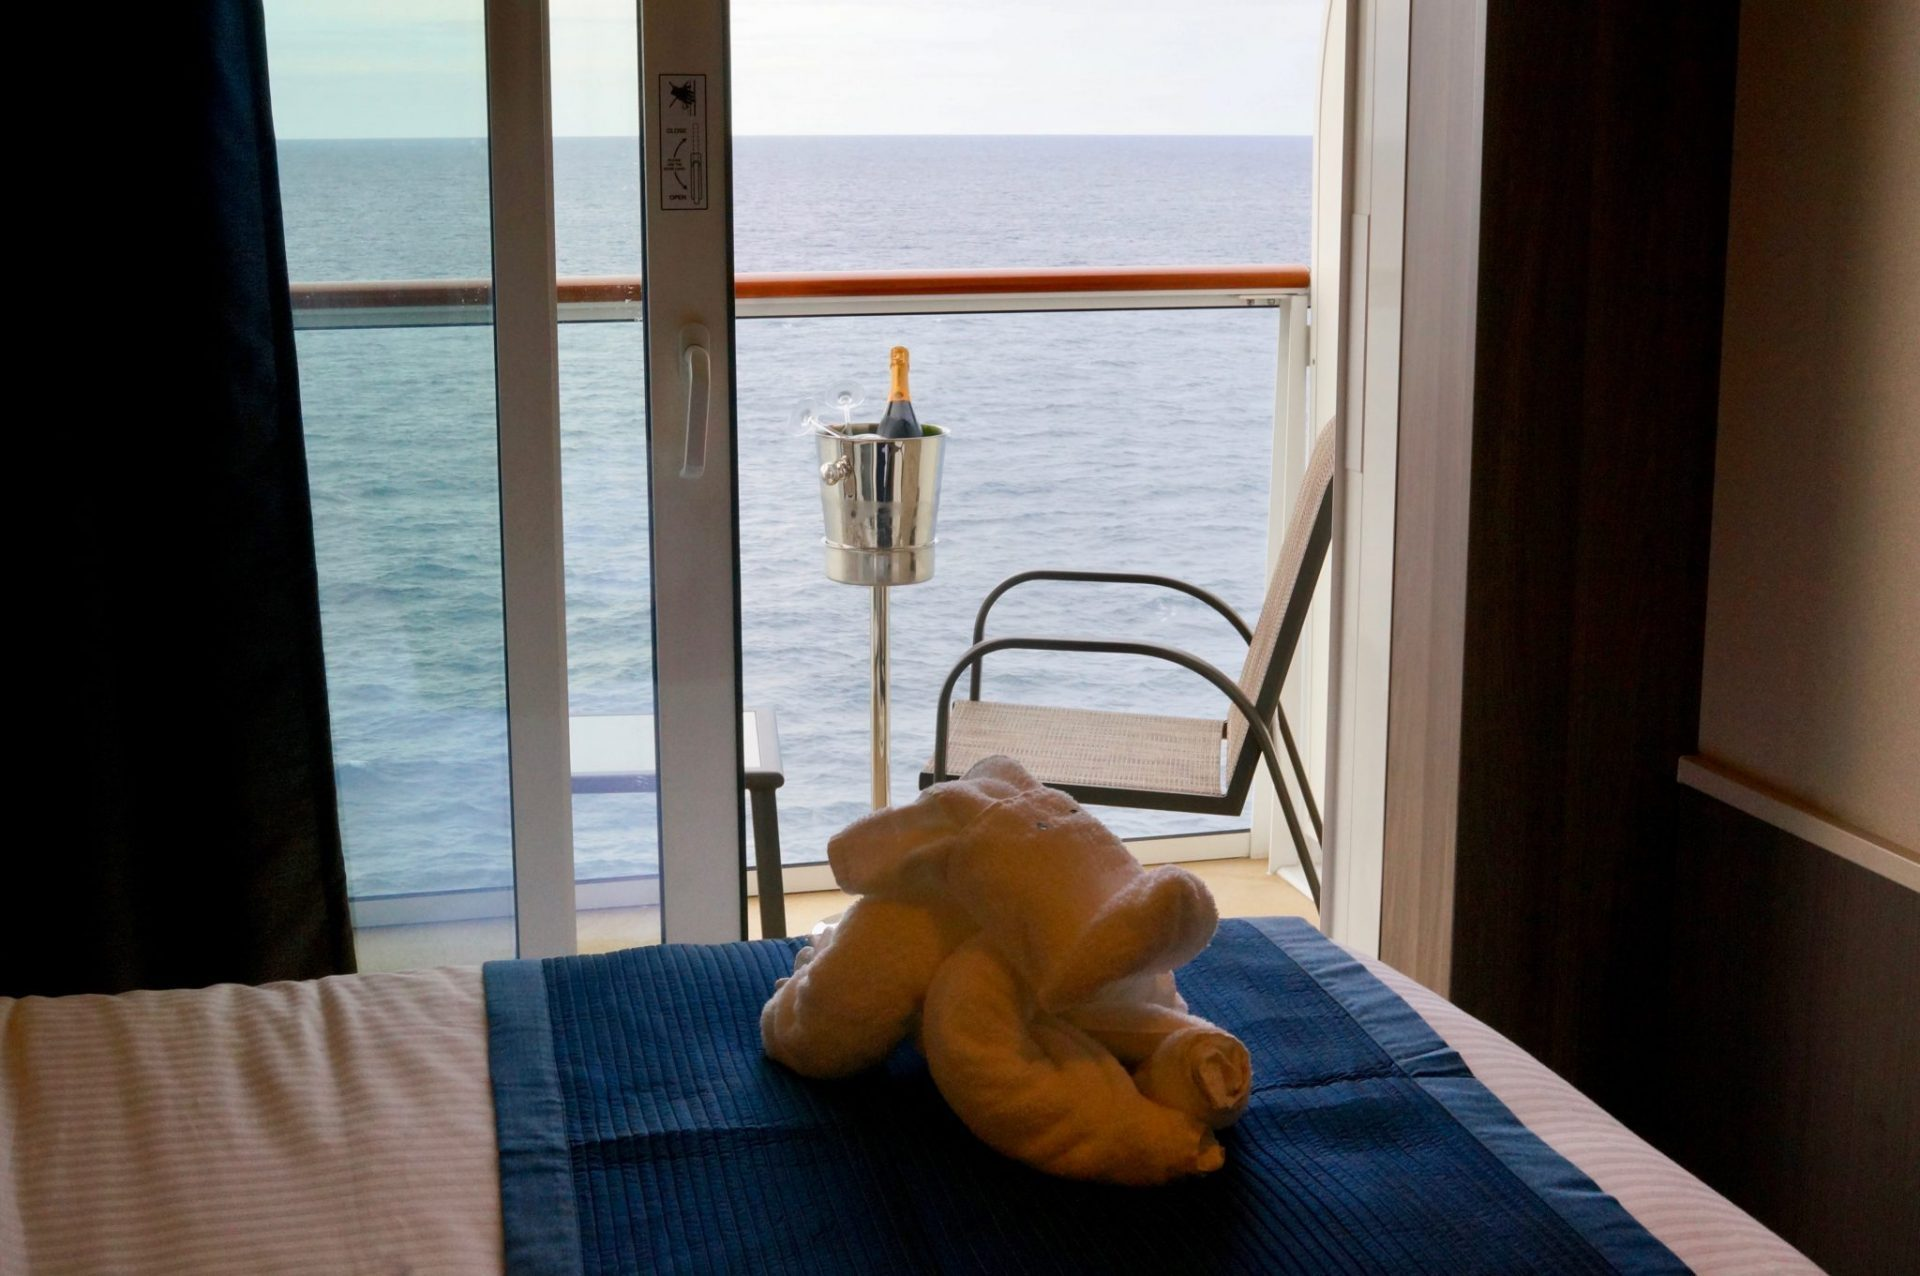 Towel animal on bed of free balcony upgrade cabin on Norwegian Bliss